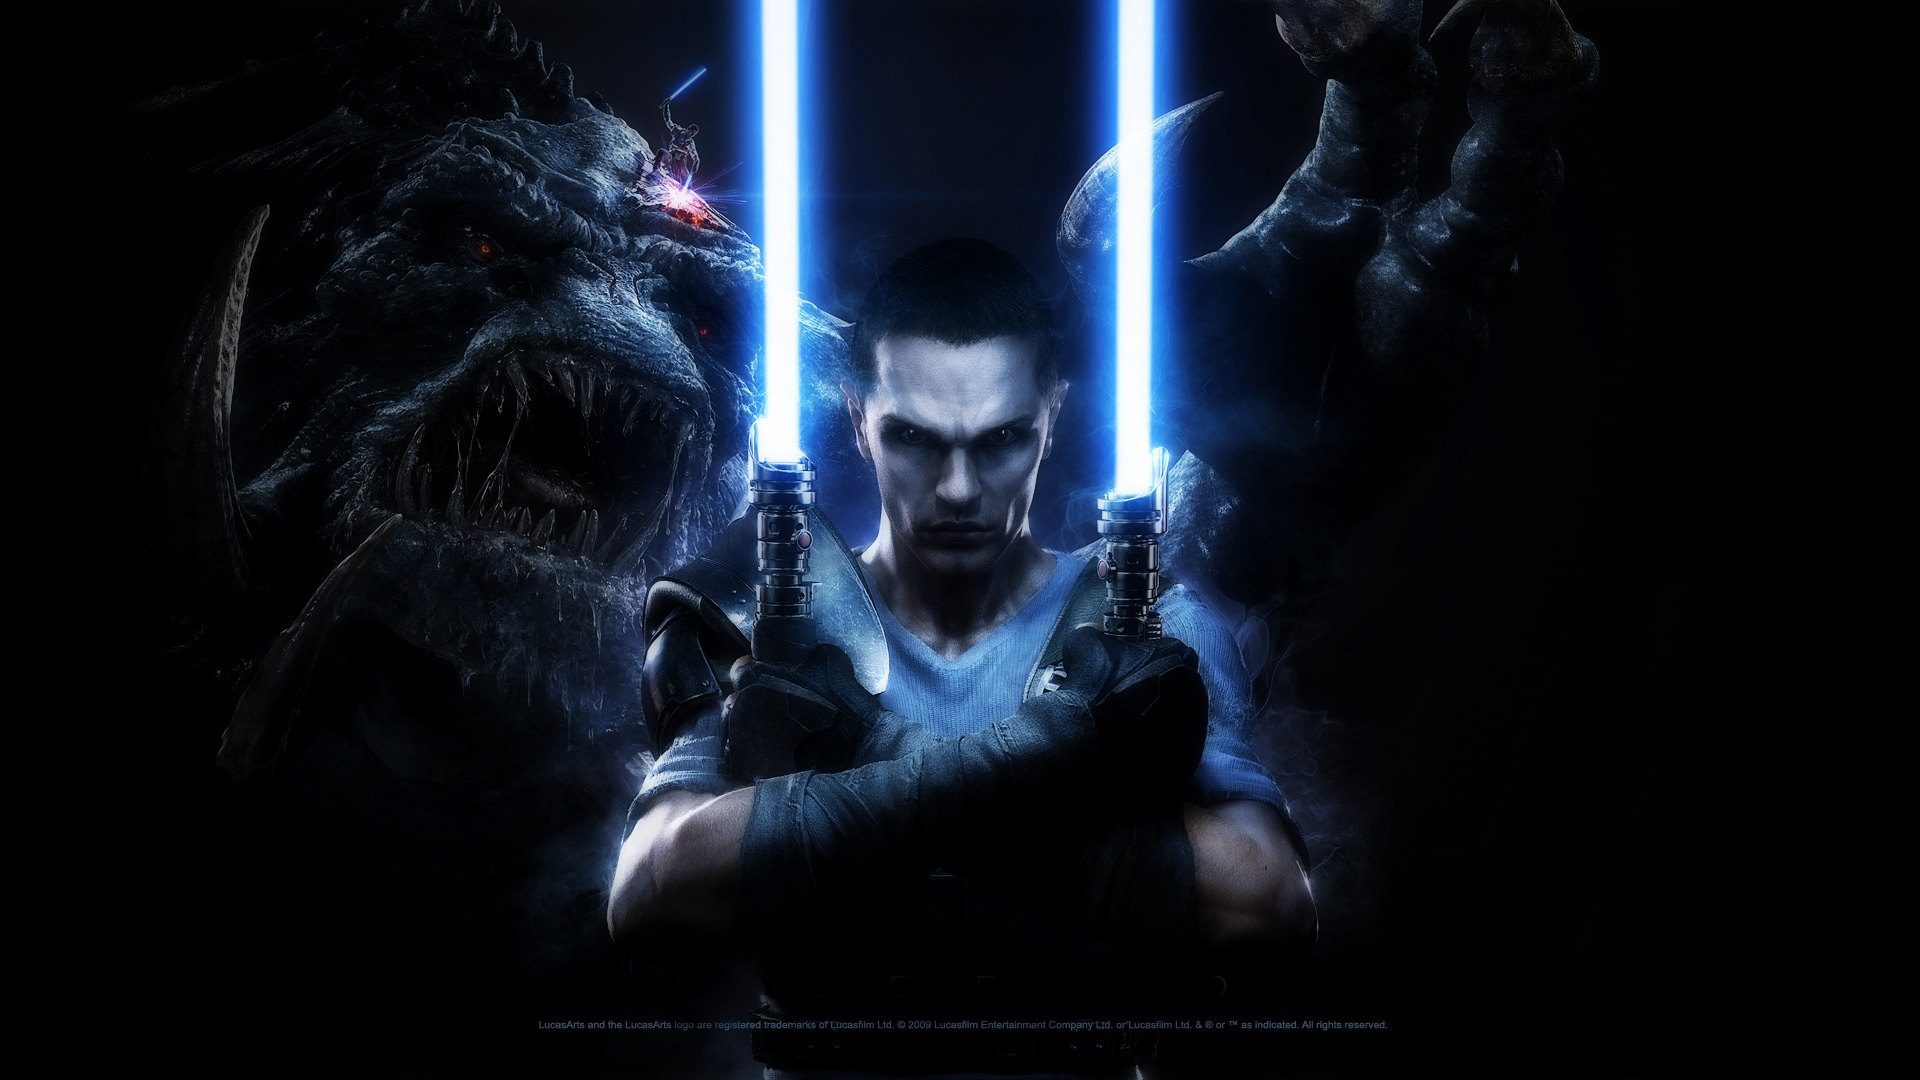 Star Wars Unleashed Wallpapers In Jpg Format For Free Download